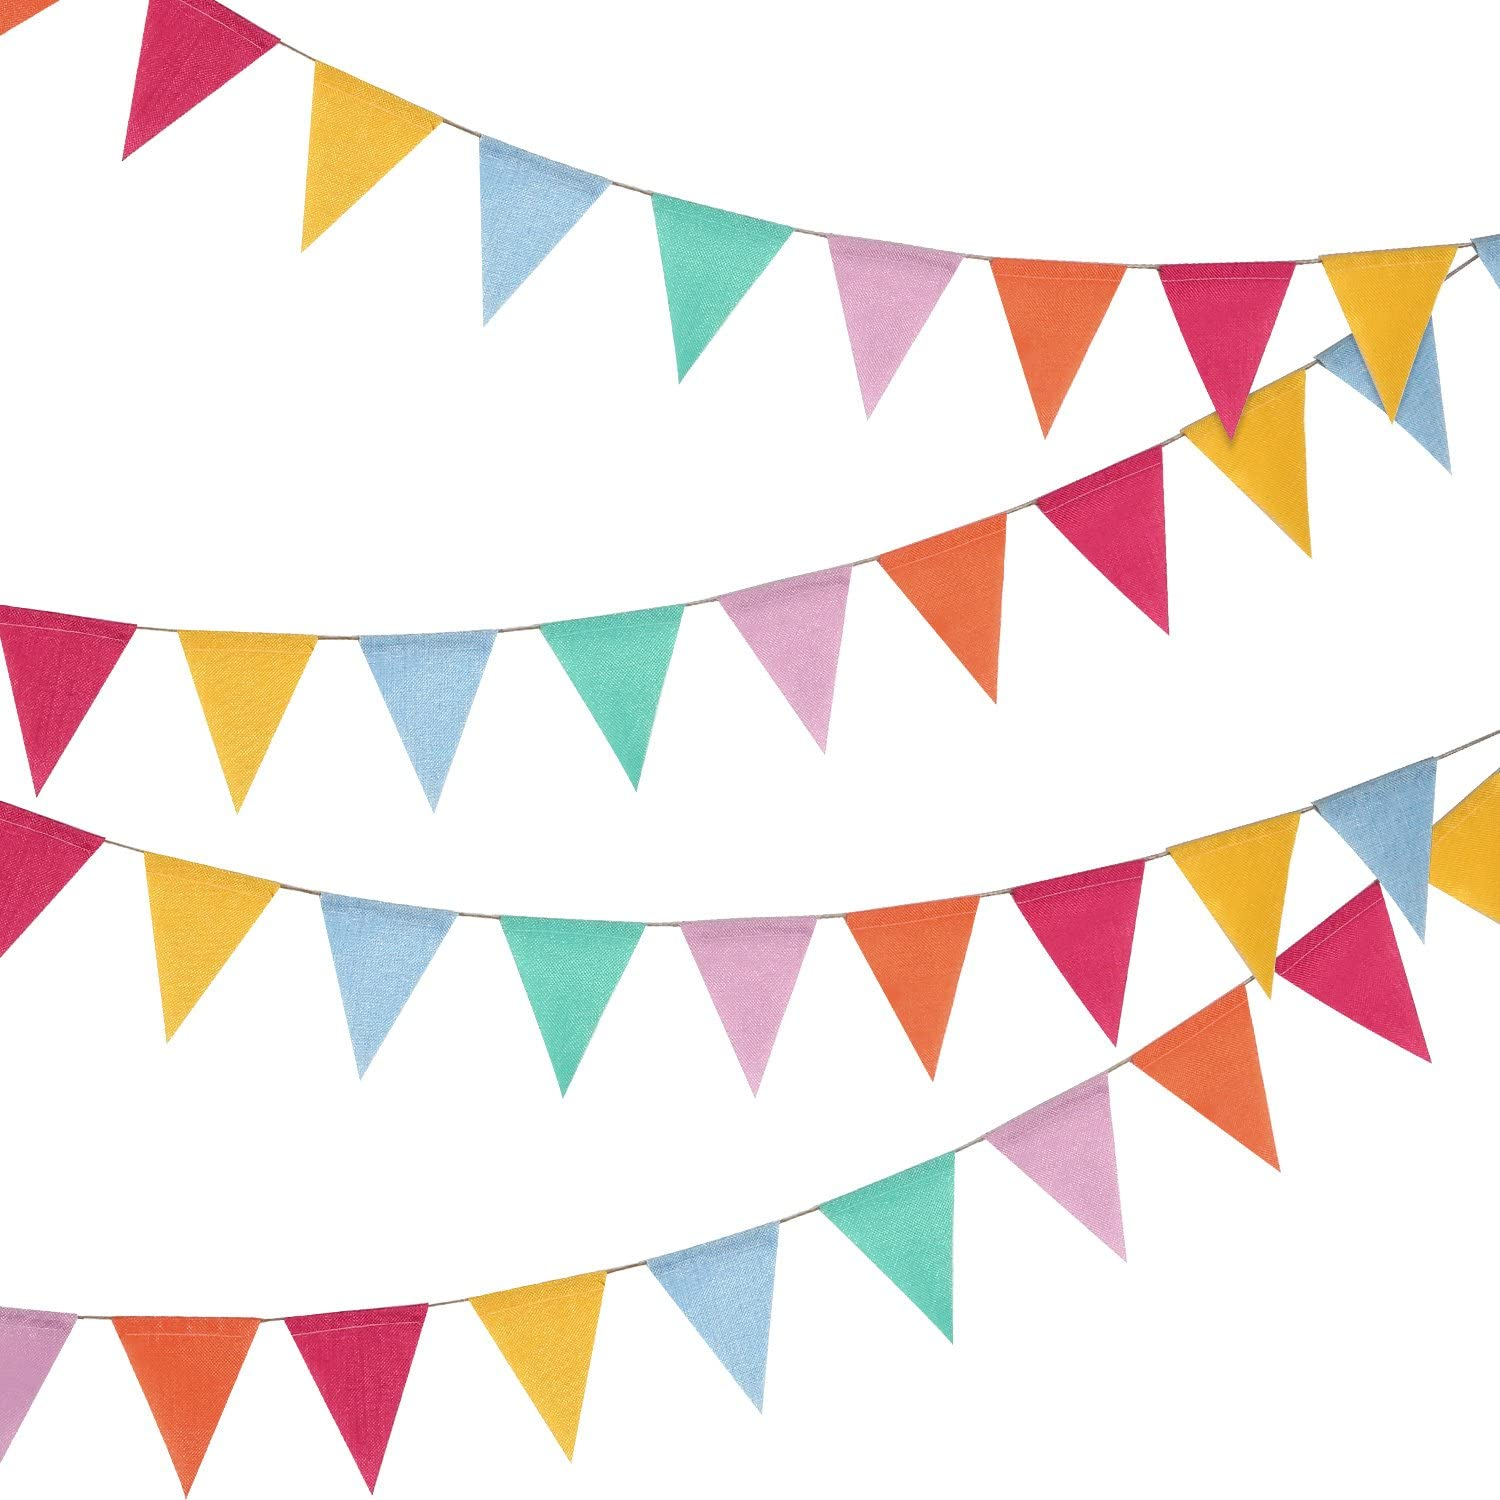 24 Pieces Colorful Pennant Flags Banner Imitated Burlap Bunting Banner Pastel Decor Fabric Triangle Flag for Party Decoration(15.7 Feet)